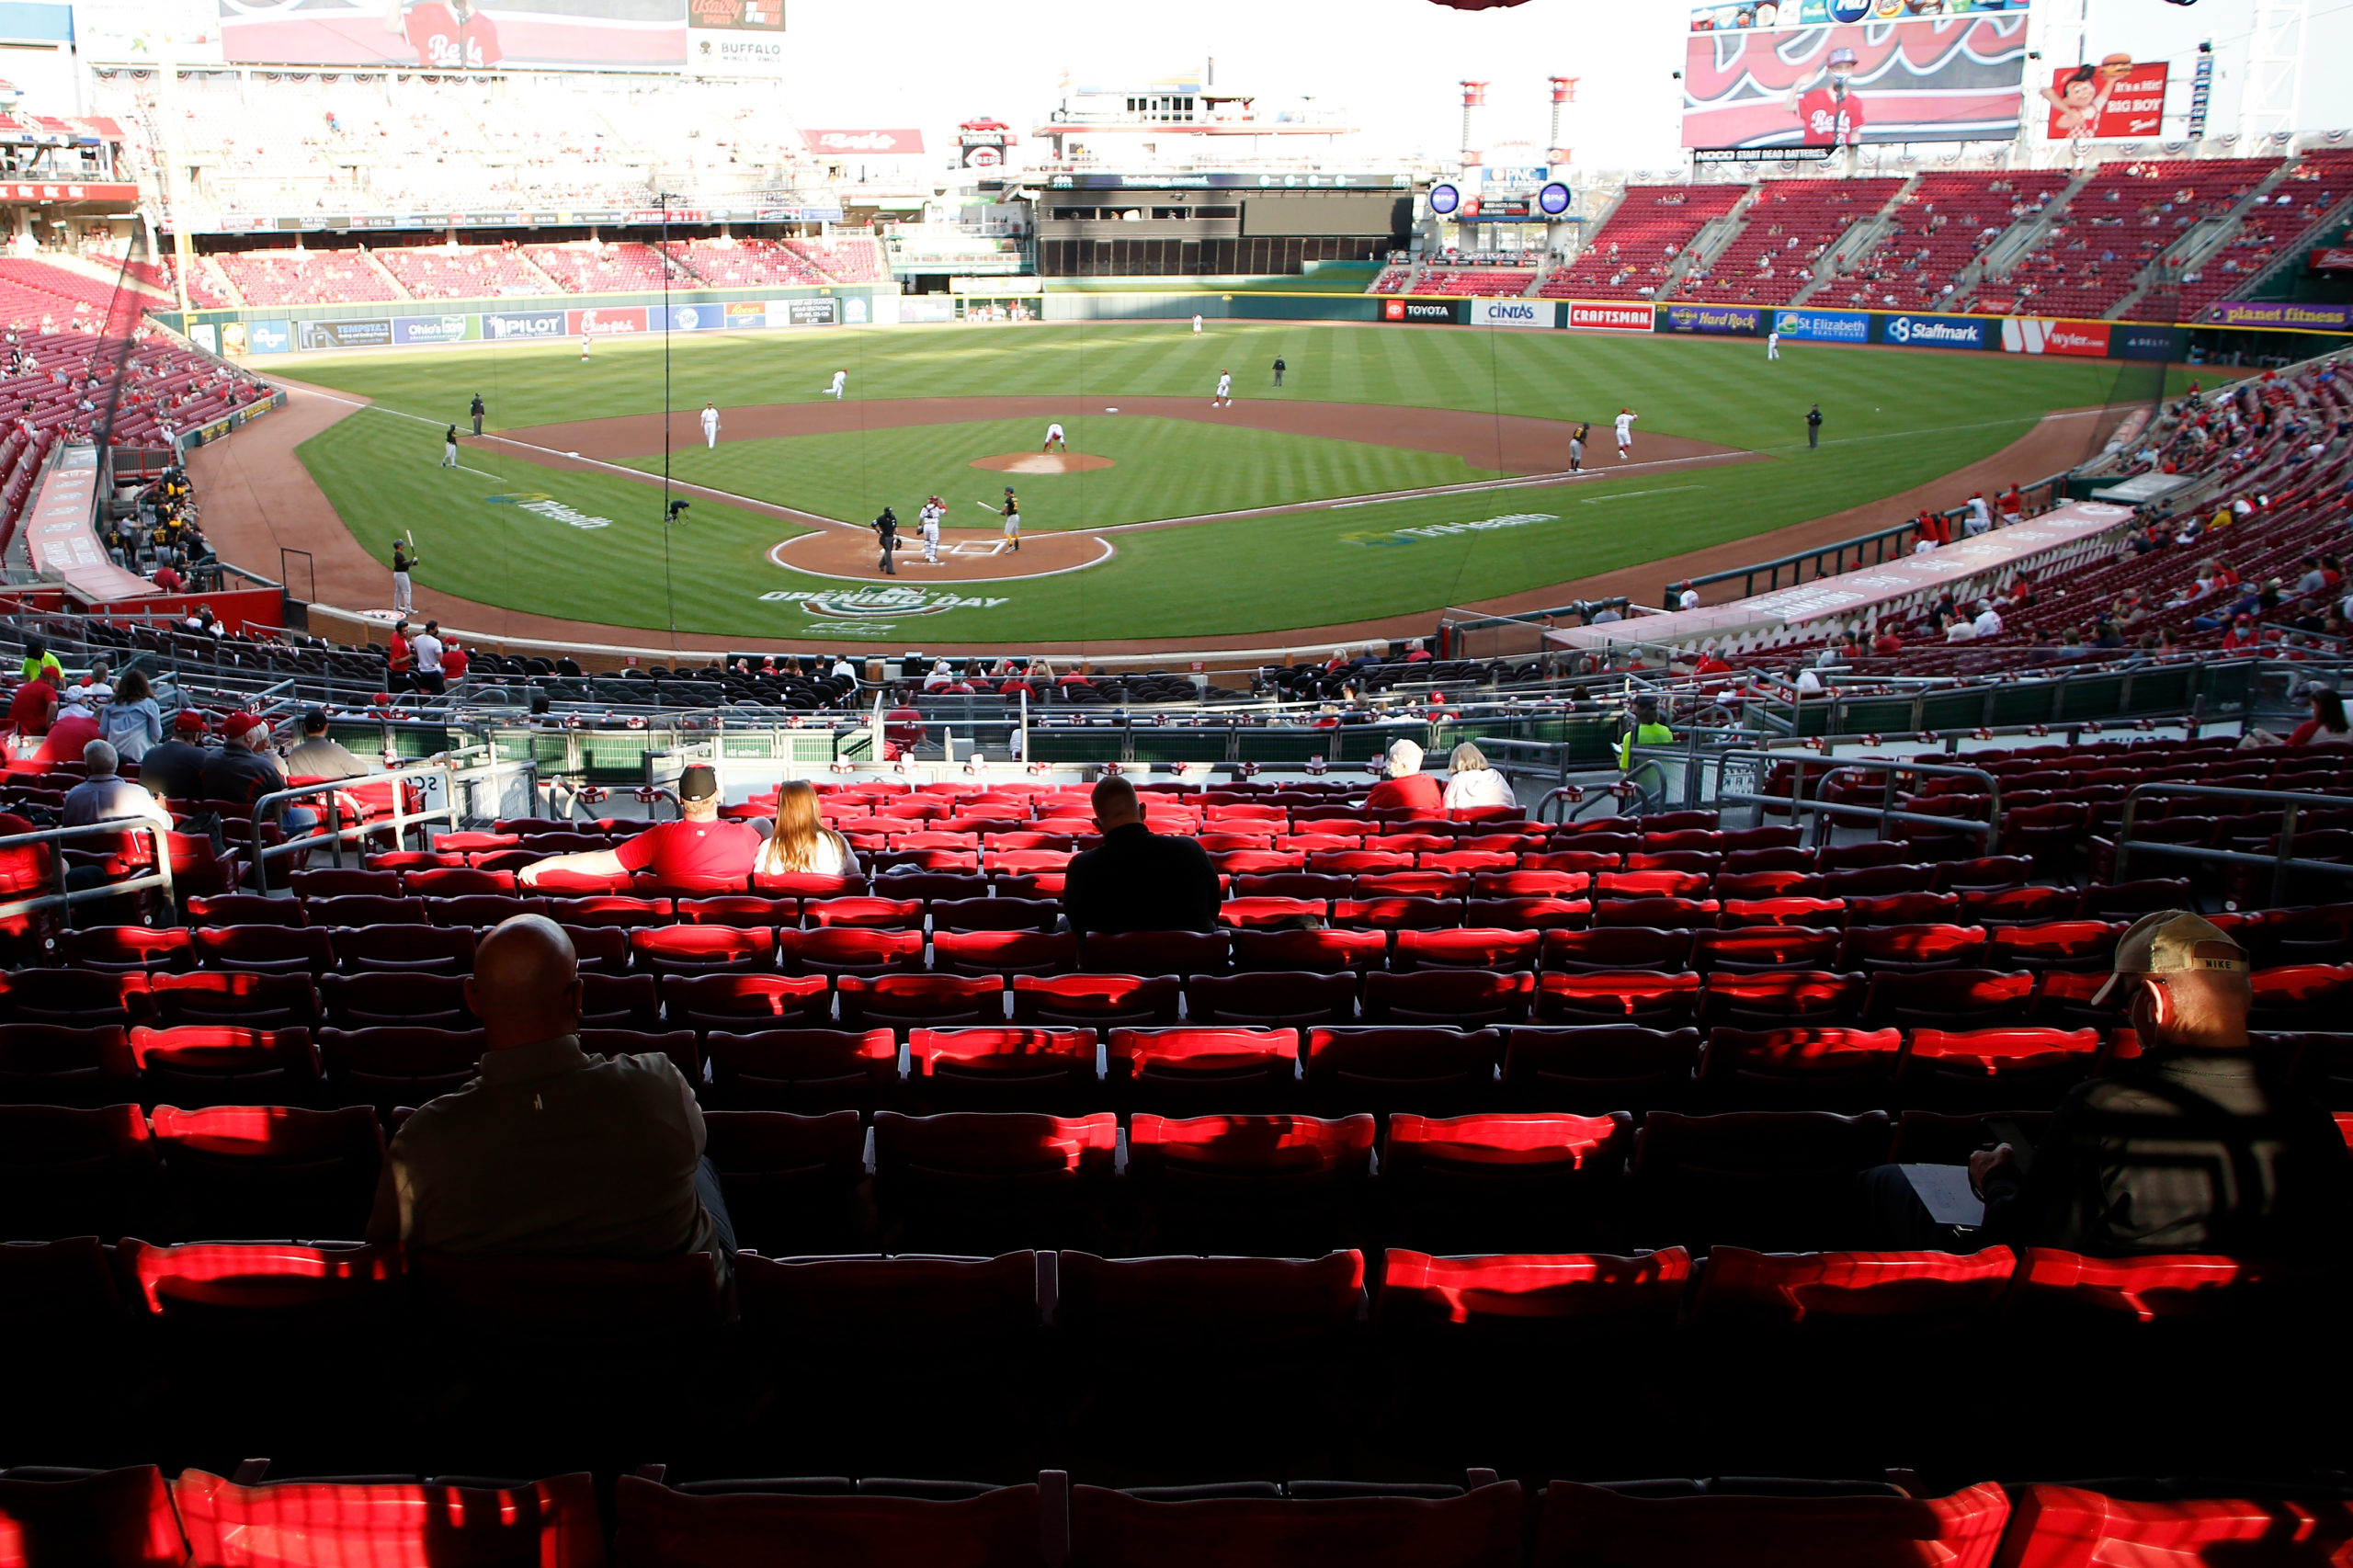 CINCINNATI, OH - APRIL 5: Fans watch the game between the Cincinnati Reds and the Pittsburgh Pirates during the first inning at Great American Ball Park on April 5, 2021 in Cincinnati, Ohio. (Photo by Kirk Irwin/Getty Images)